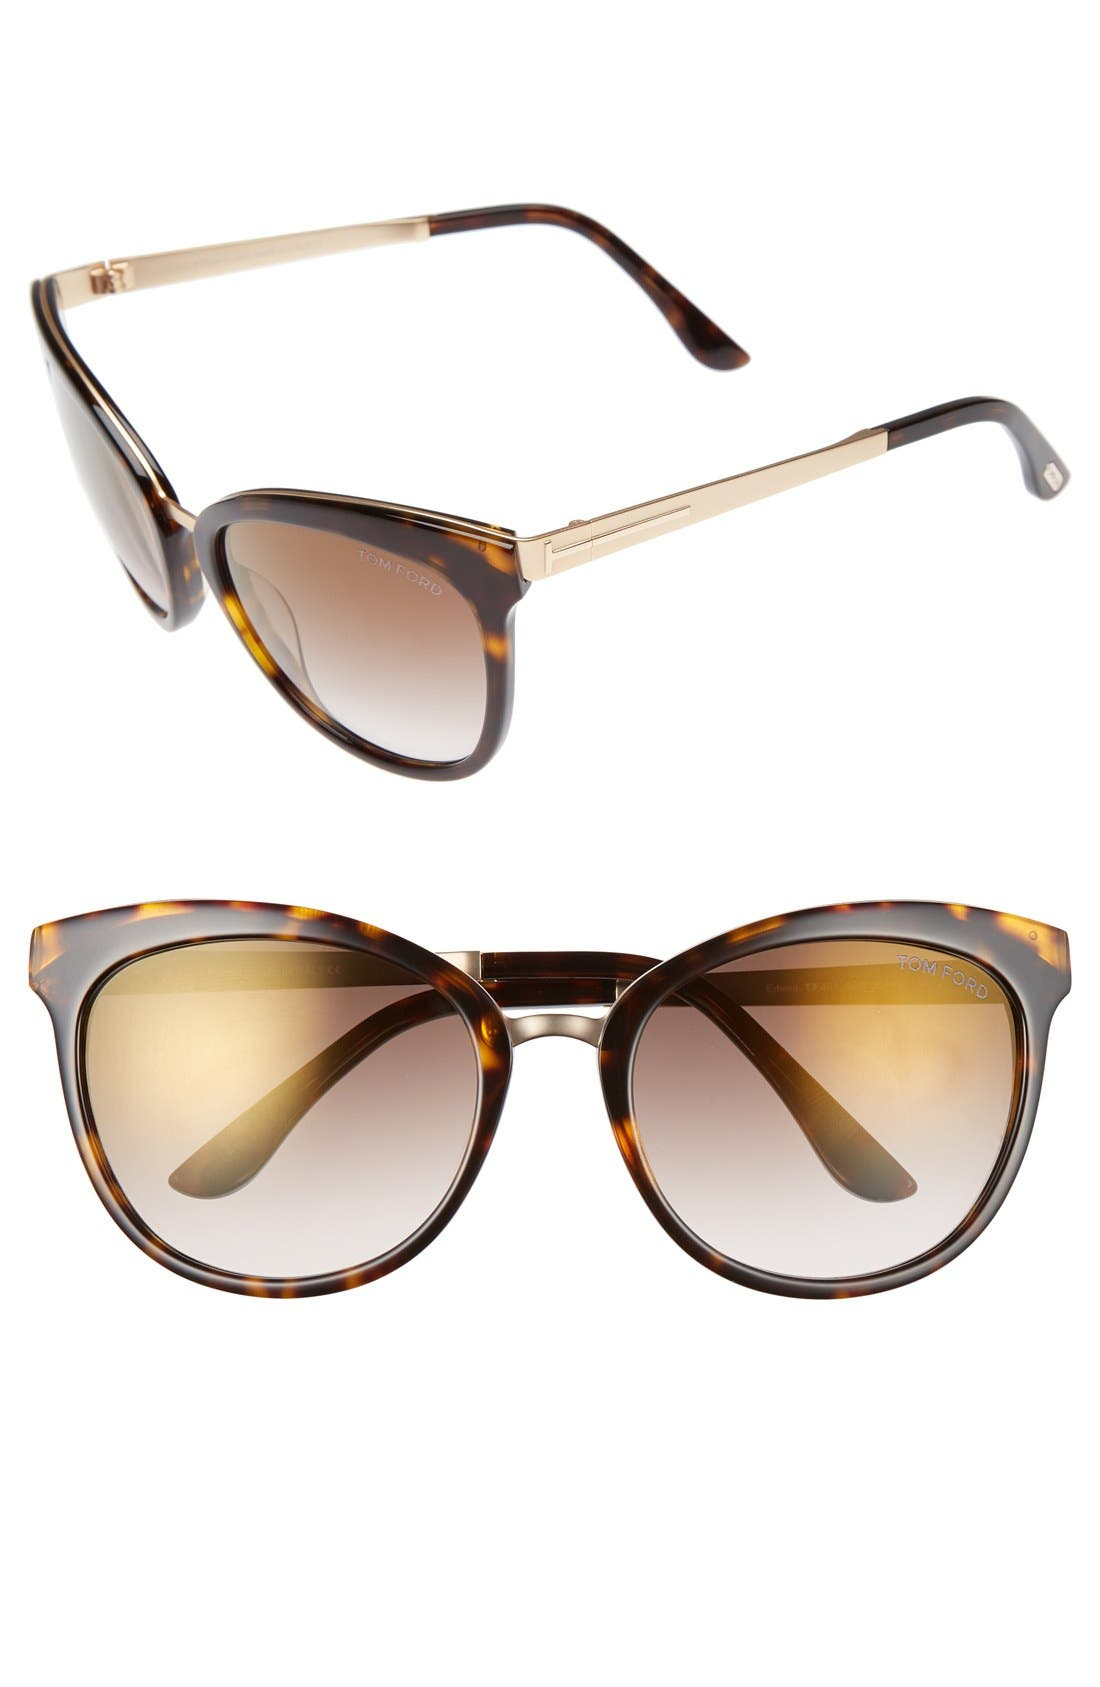 'Emma' 56mm Retro Sunglasses,                             Main thumbnail 1, color,                             Dark Havana/ Brown Mirror